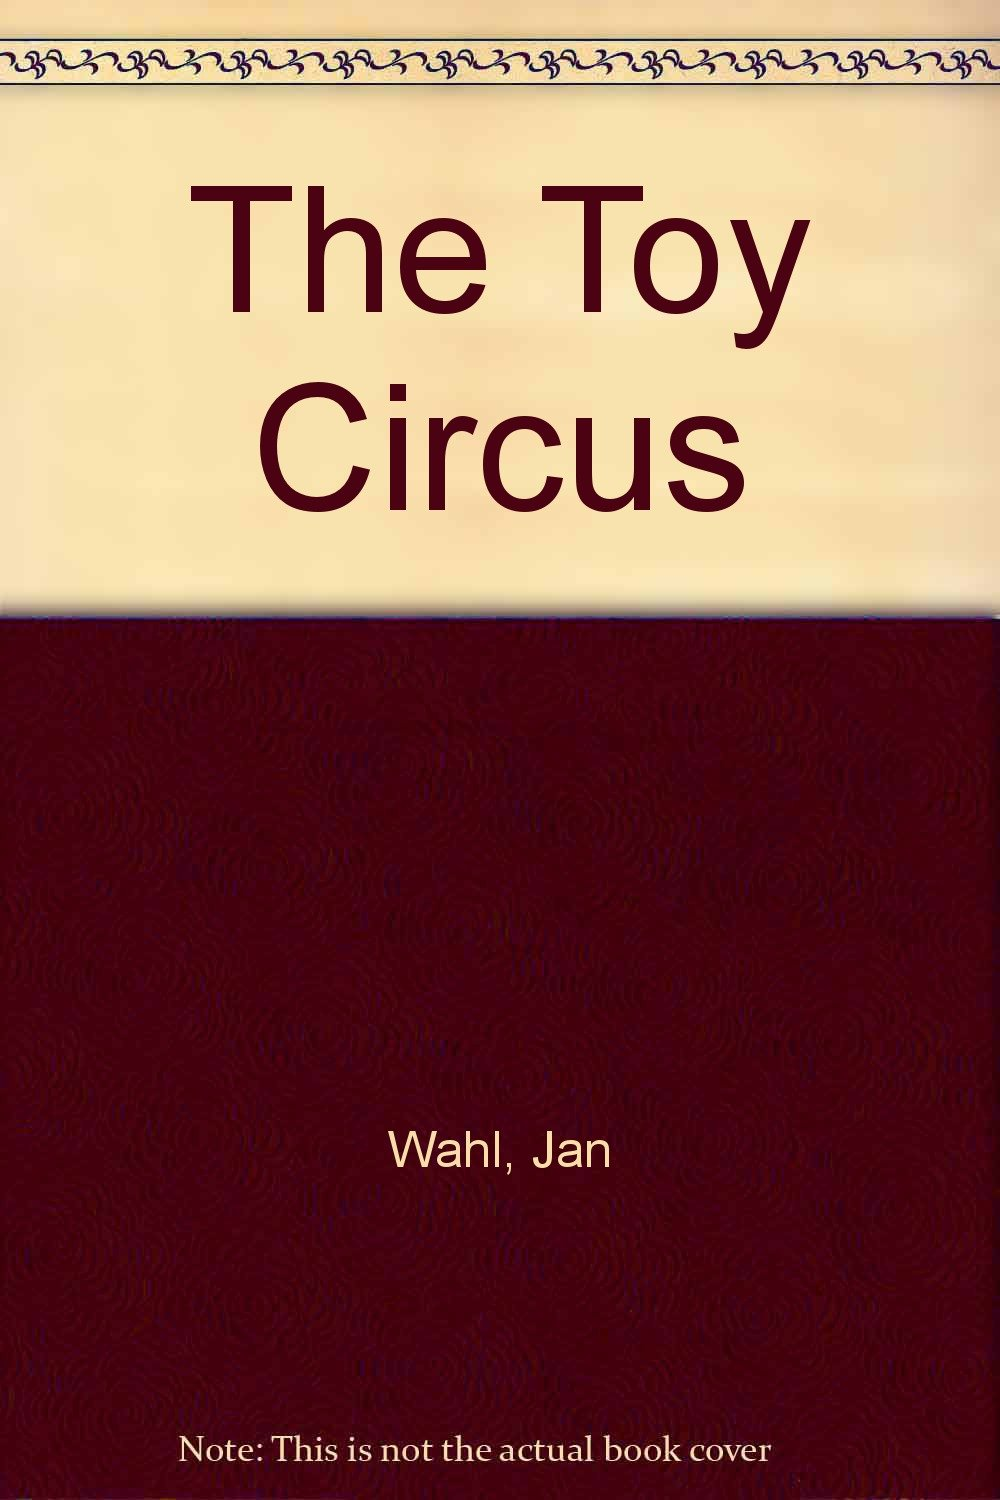 The Toy Circus, Wahl, Jan